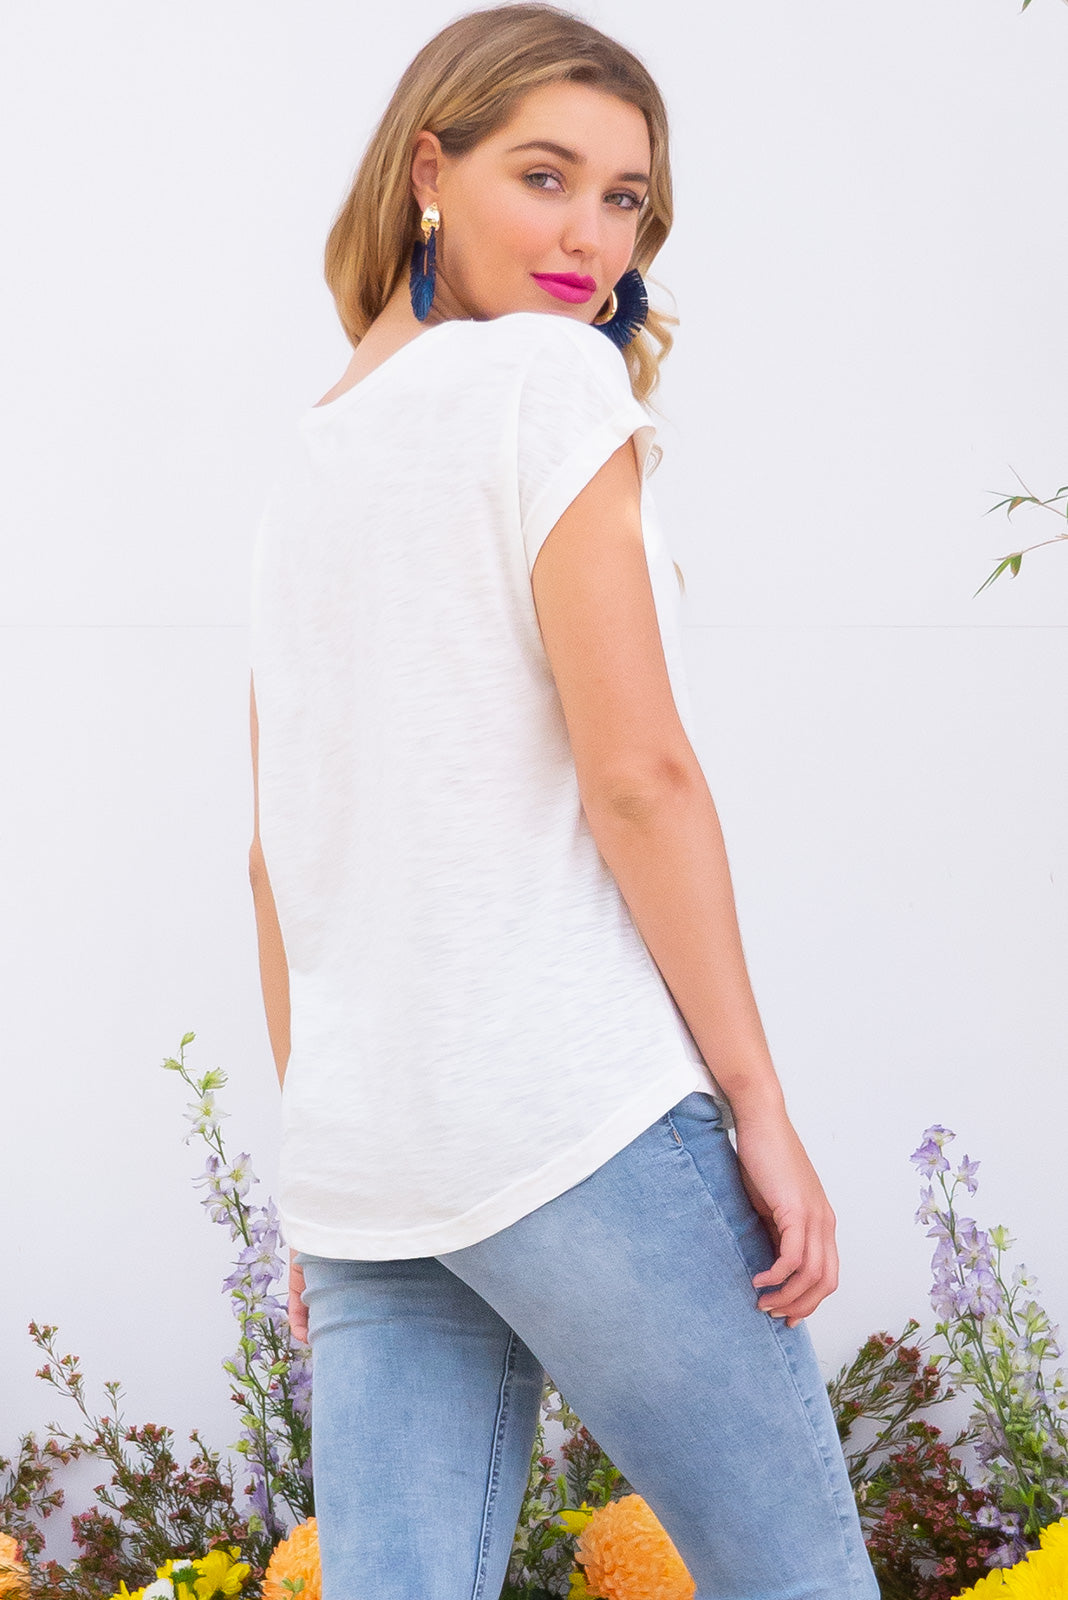 Phoenix Pearl White short sleeve tshirt has a relaxed fit and is made of soft cotton polyester fabric in a warm classic white